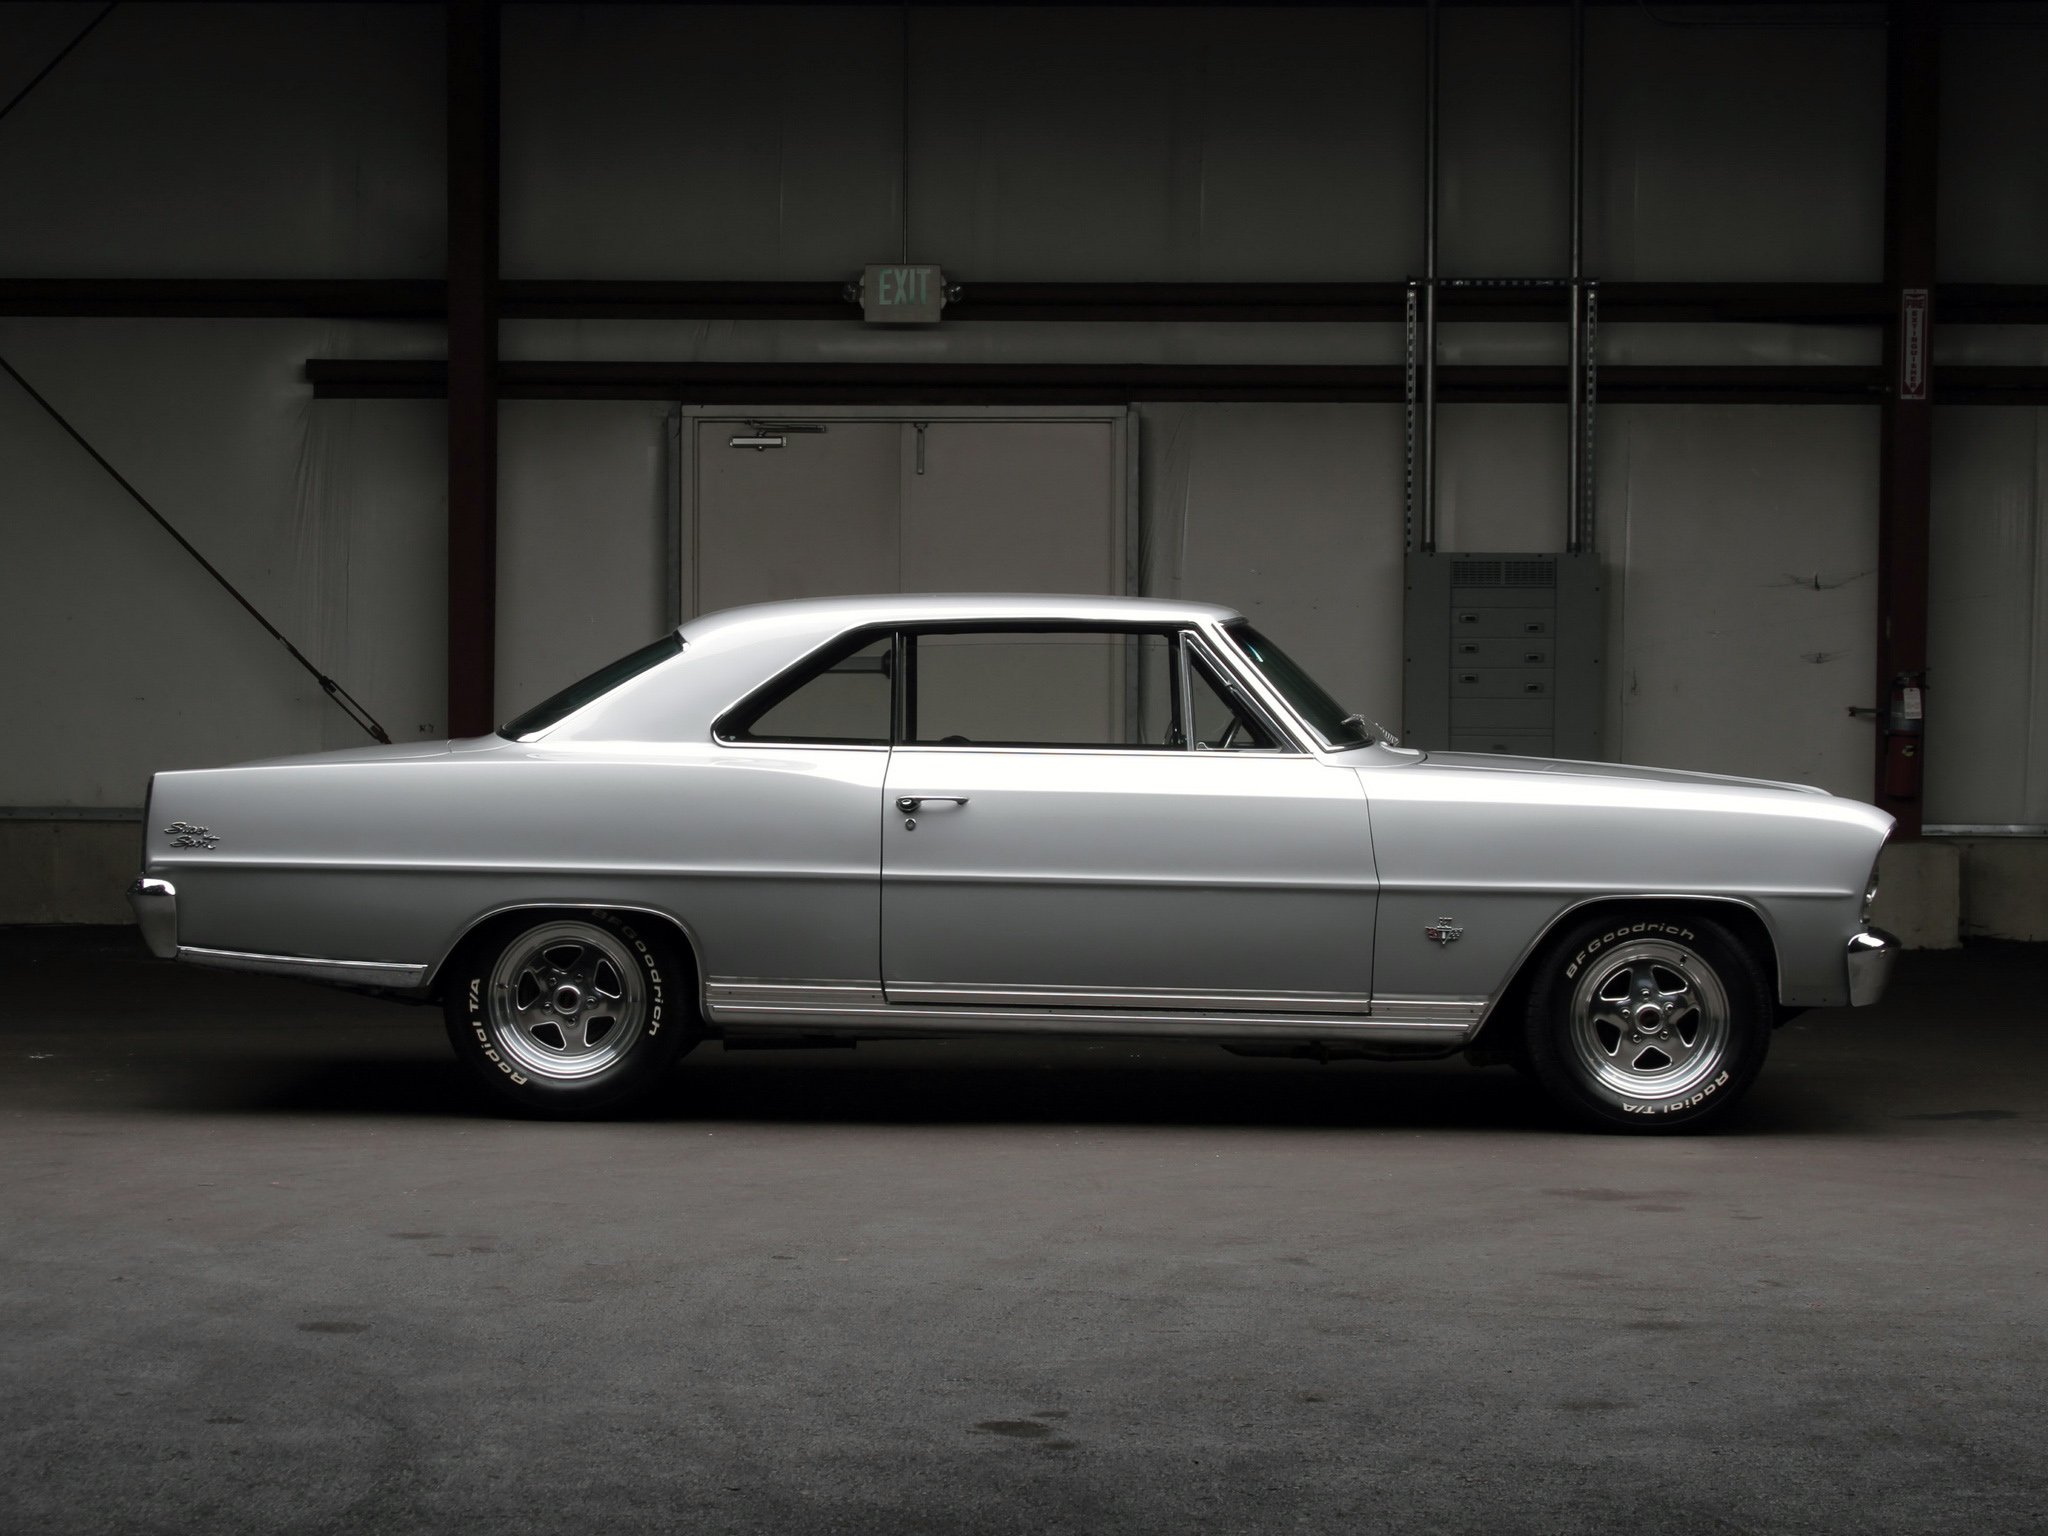 1966 Chevrolet Chevy I Nova S Hardtop Coupe 11737 11837 Muscle Ii Classic Hot Rod Rods G Wallpaper 2048x1536 245066 Wallpaperup